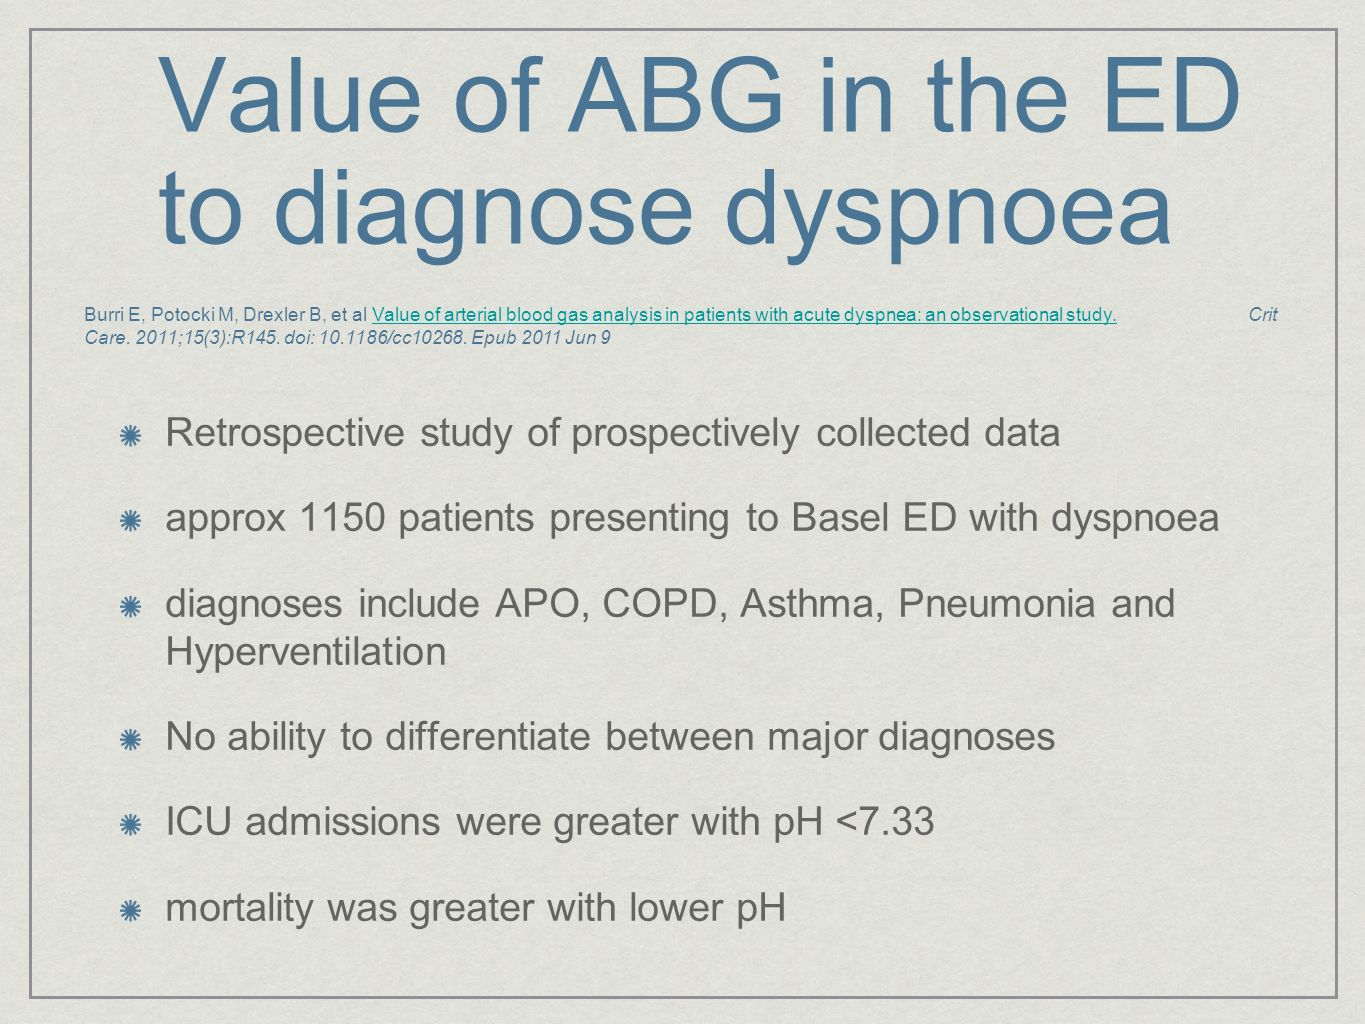 Value of ABG in the ED to diagnose dyspnoea